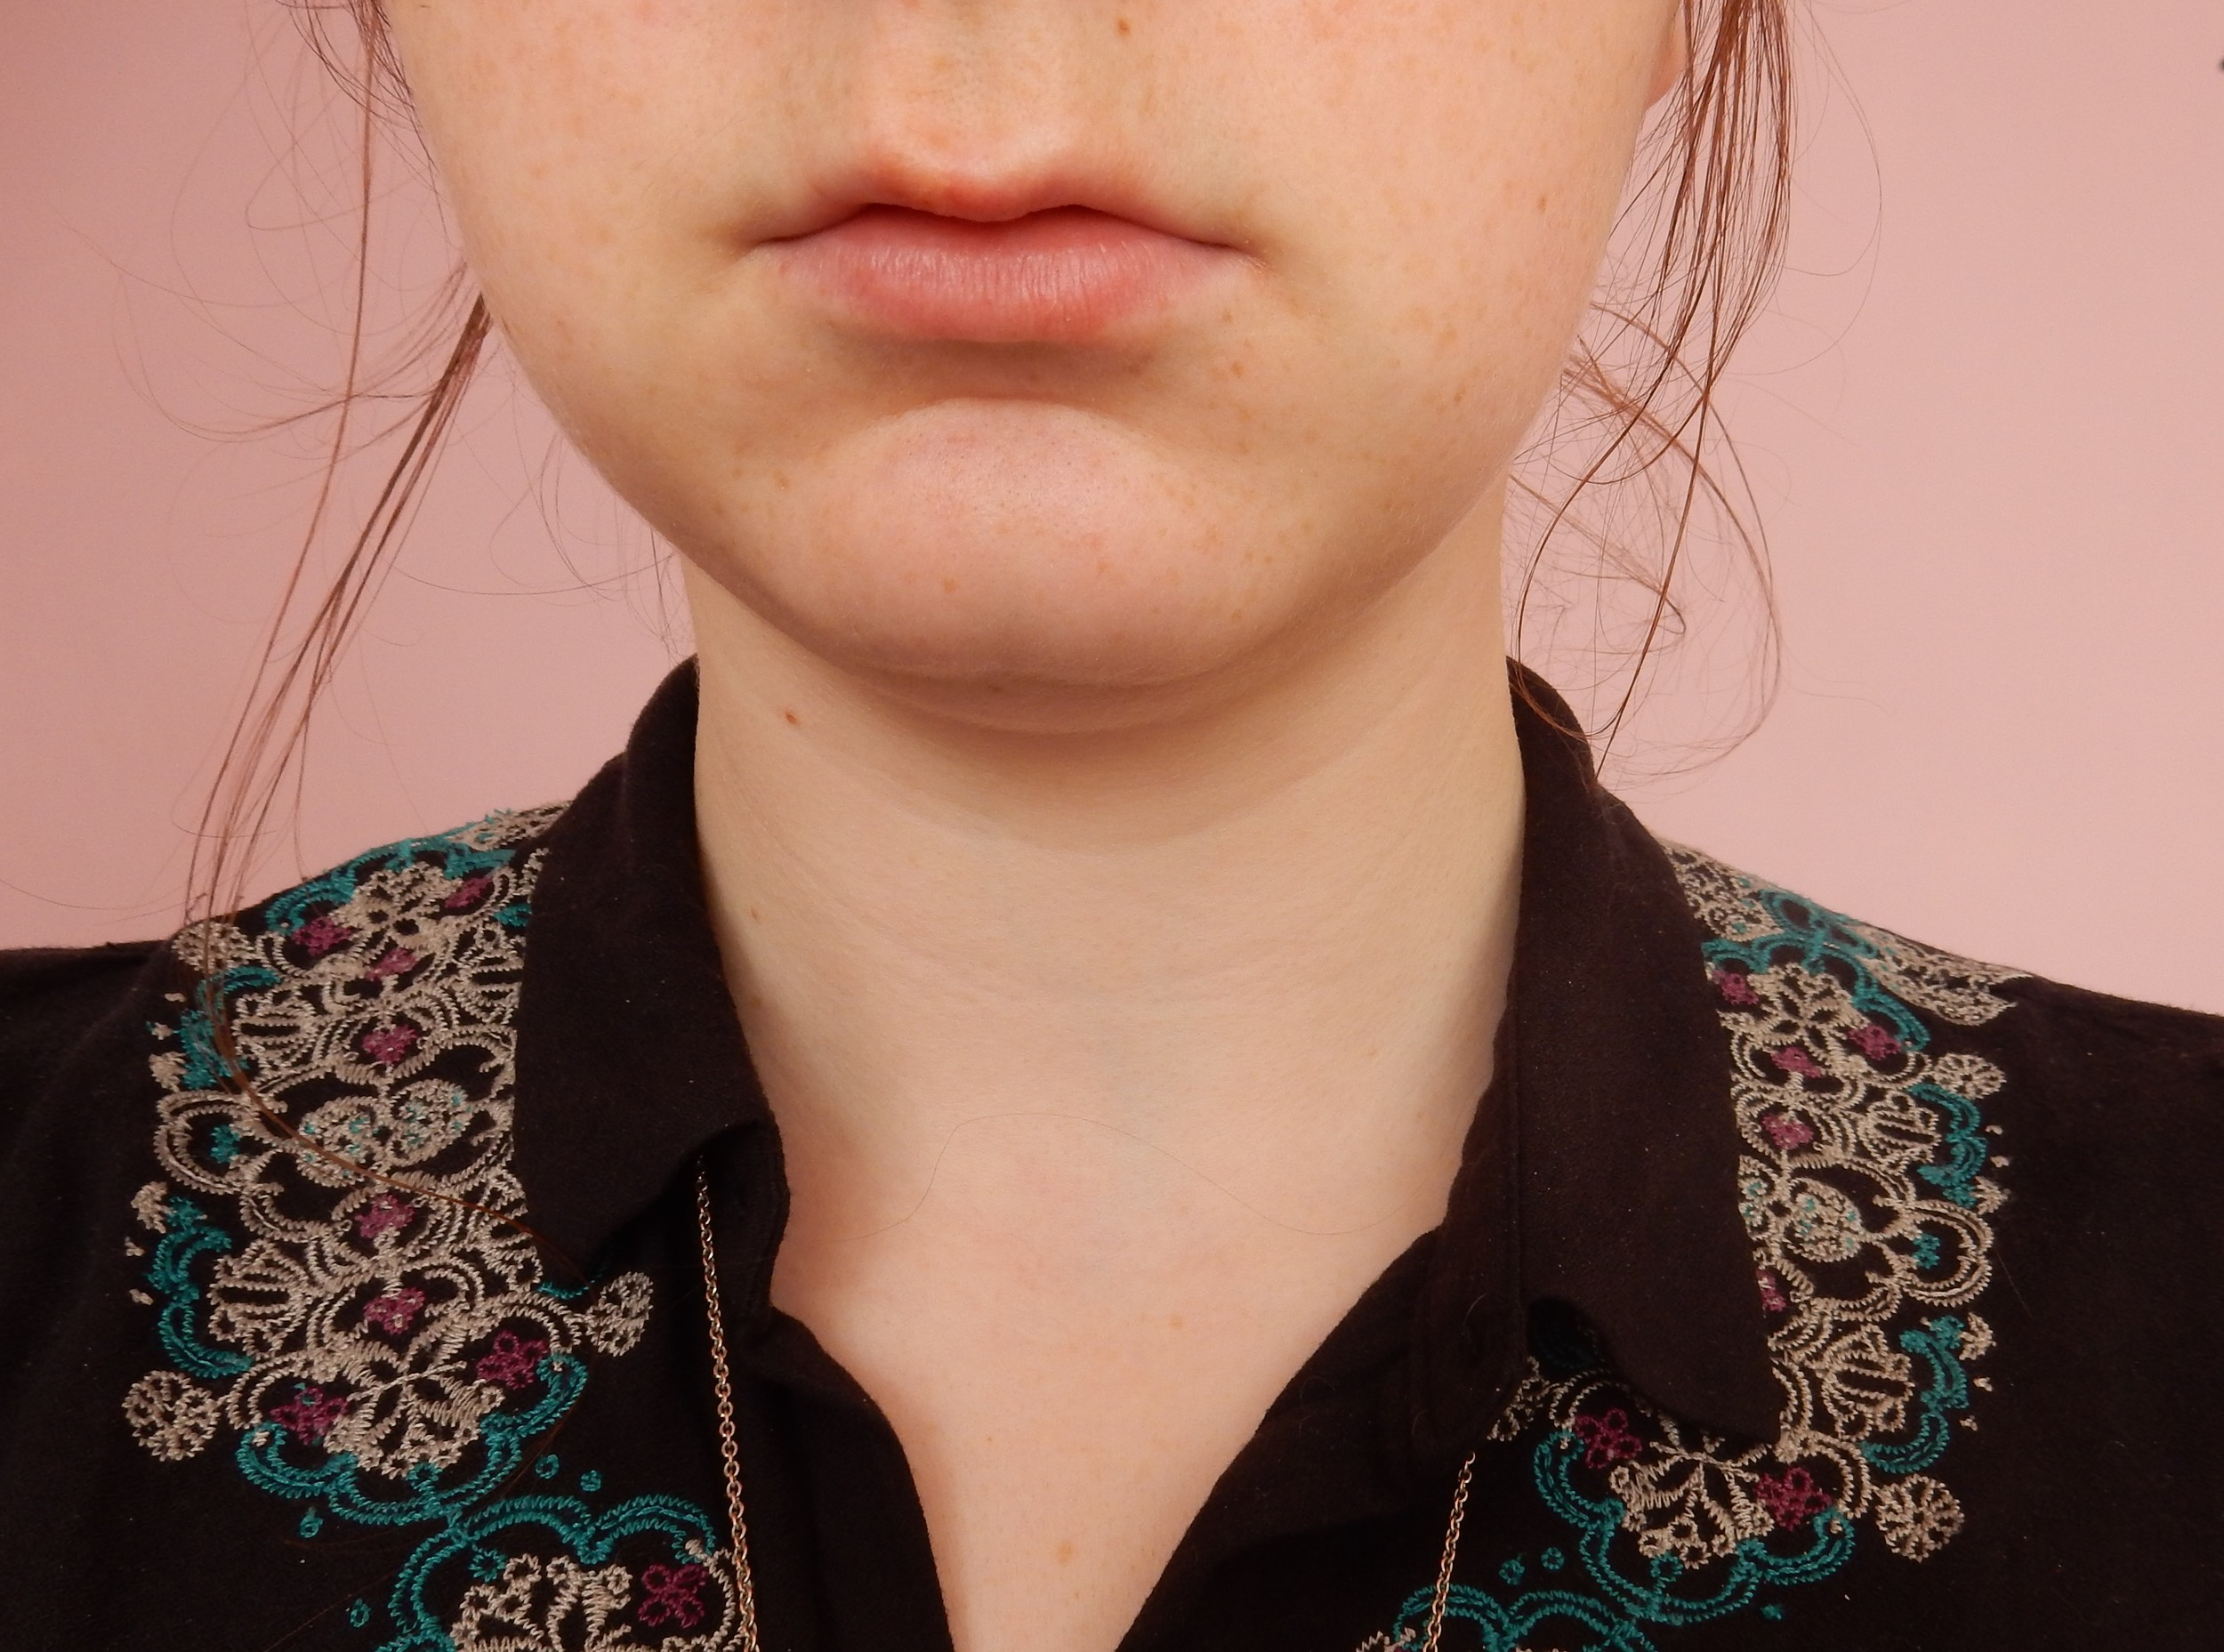 ioma lip lift review before